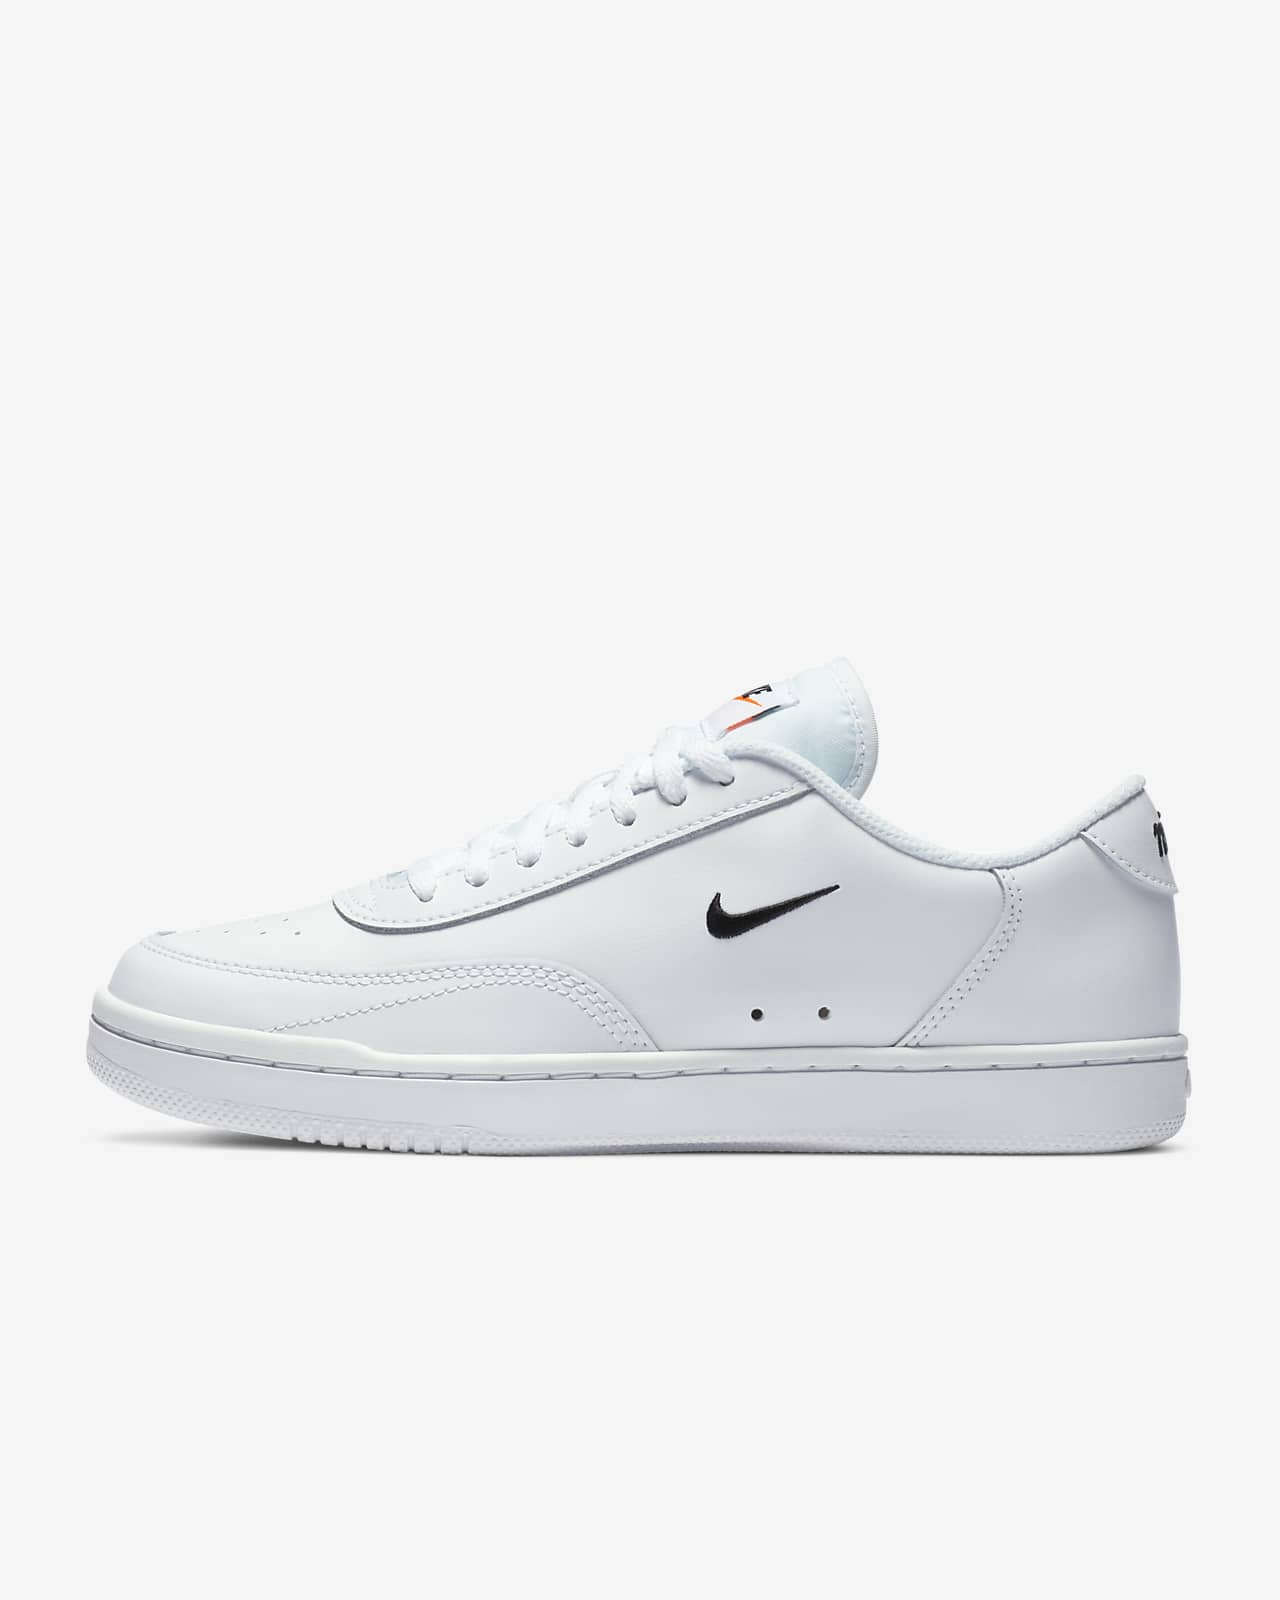 NikeCourt Vintage Women's Shoe